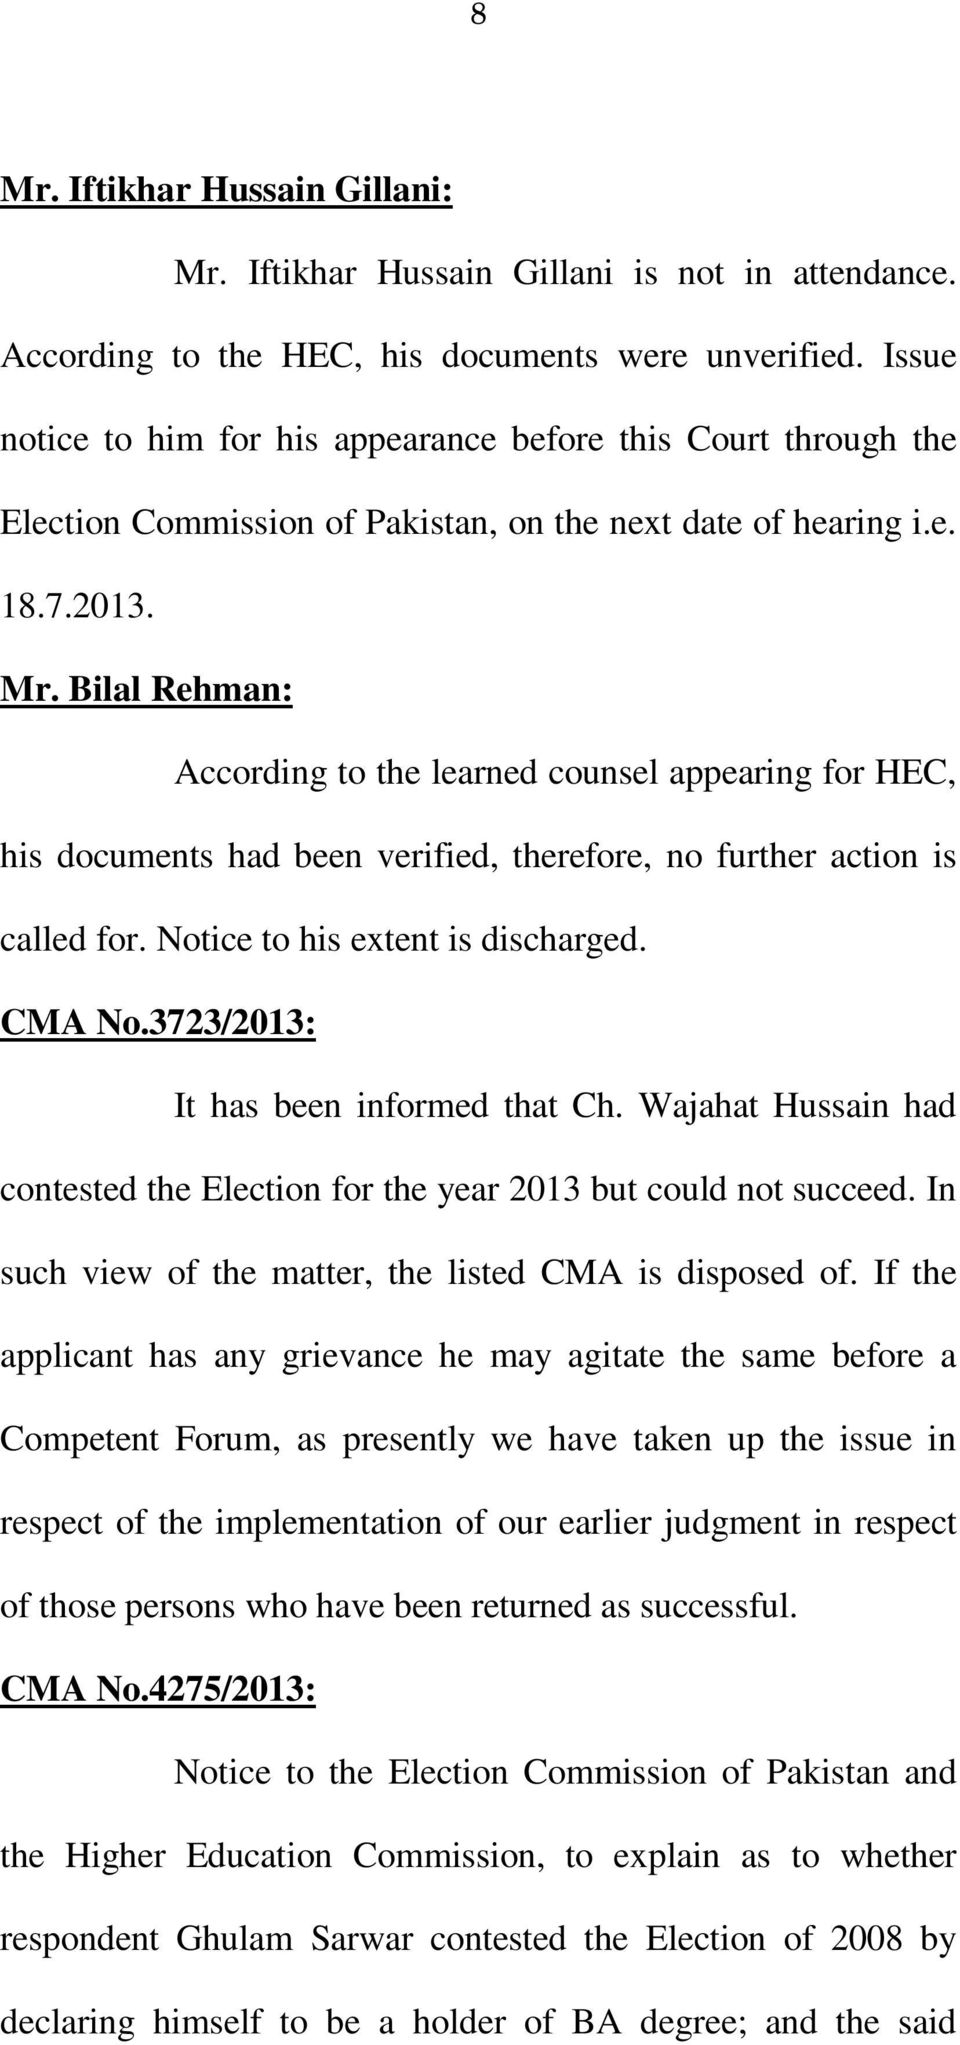 Bilal Rehman: According to the learned counsel appearing for HEC, his documents had been verified, therefore, no further action is called for. Notice to his extent is discharged. CMA No.